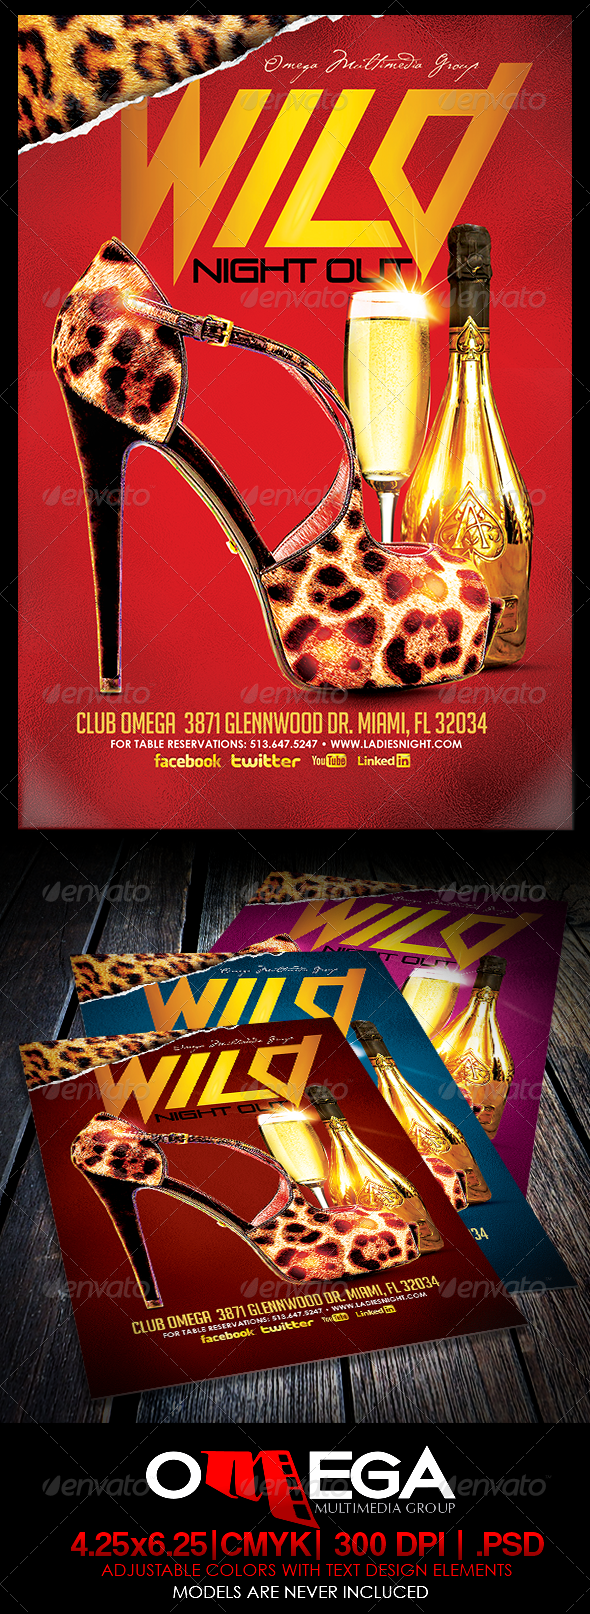 Wild Night Out - Events Flyers